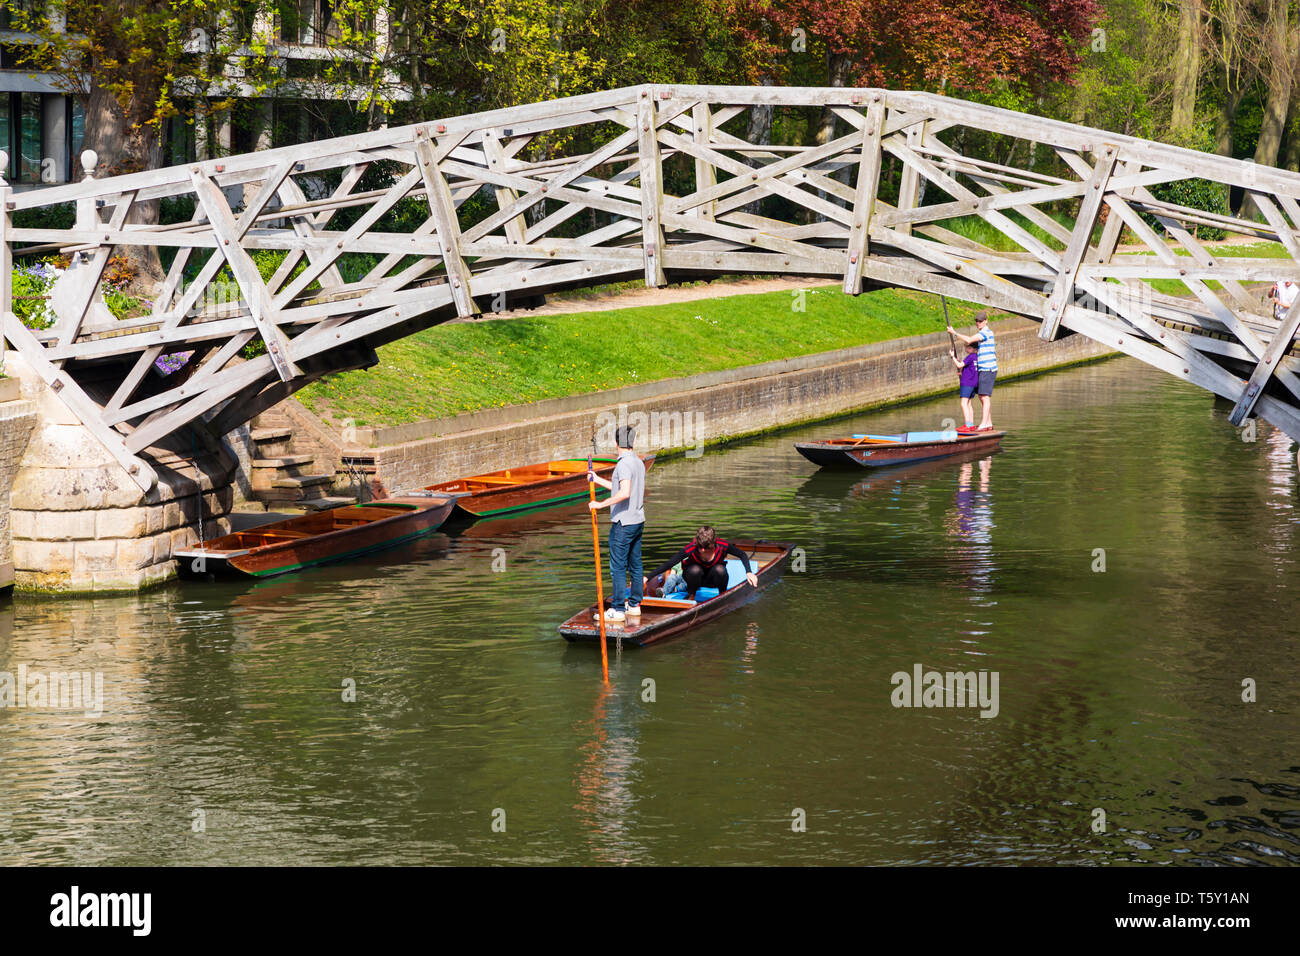 Punters punting under the Mathematical Bridge over the River Cam, University town of Cambridge, Cambridgeshire, England - Stock Image